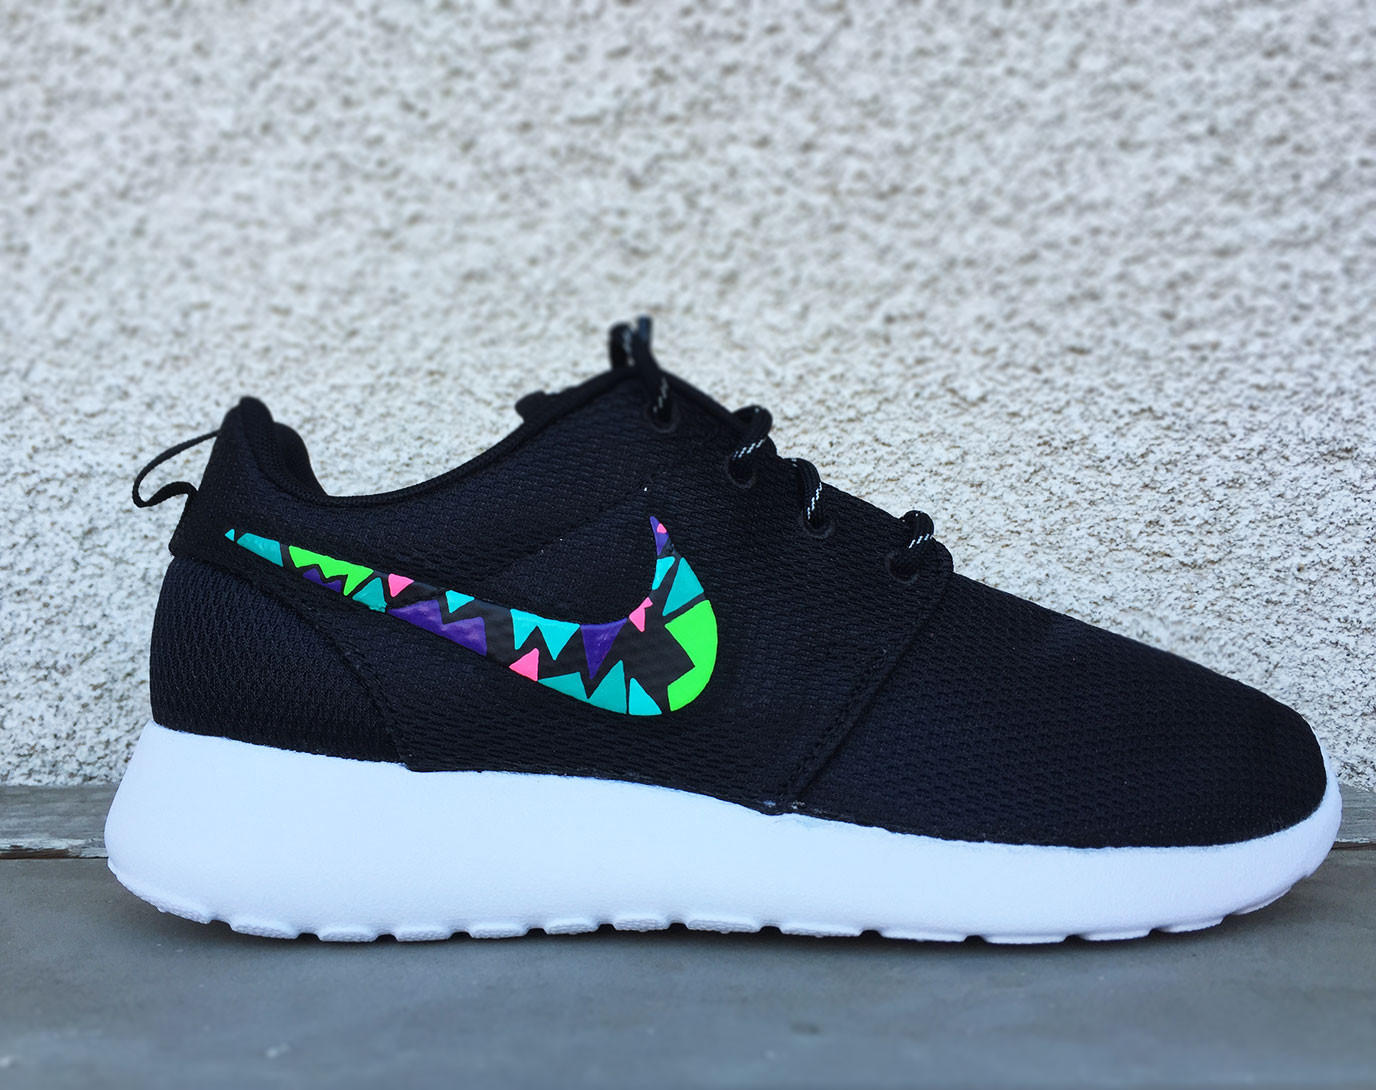 Nike Roshe Run custom design Rosherun from Custom Sneakz